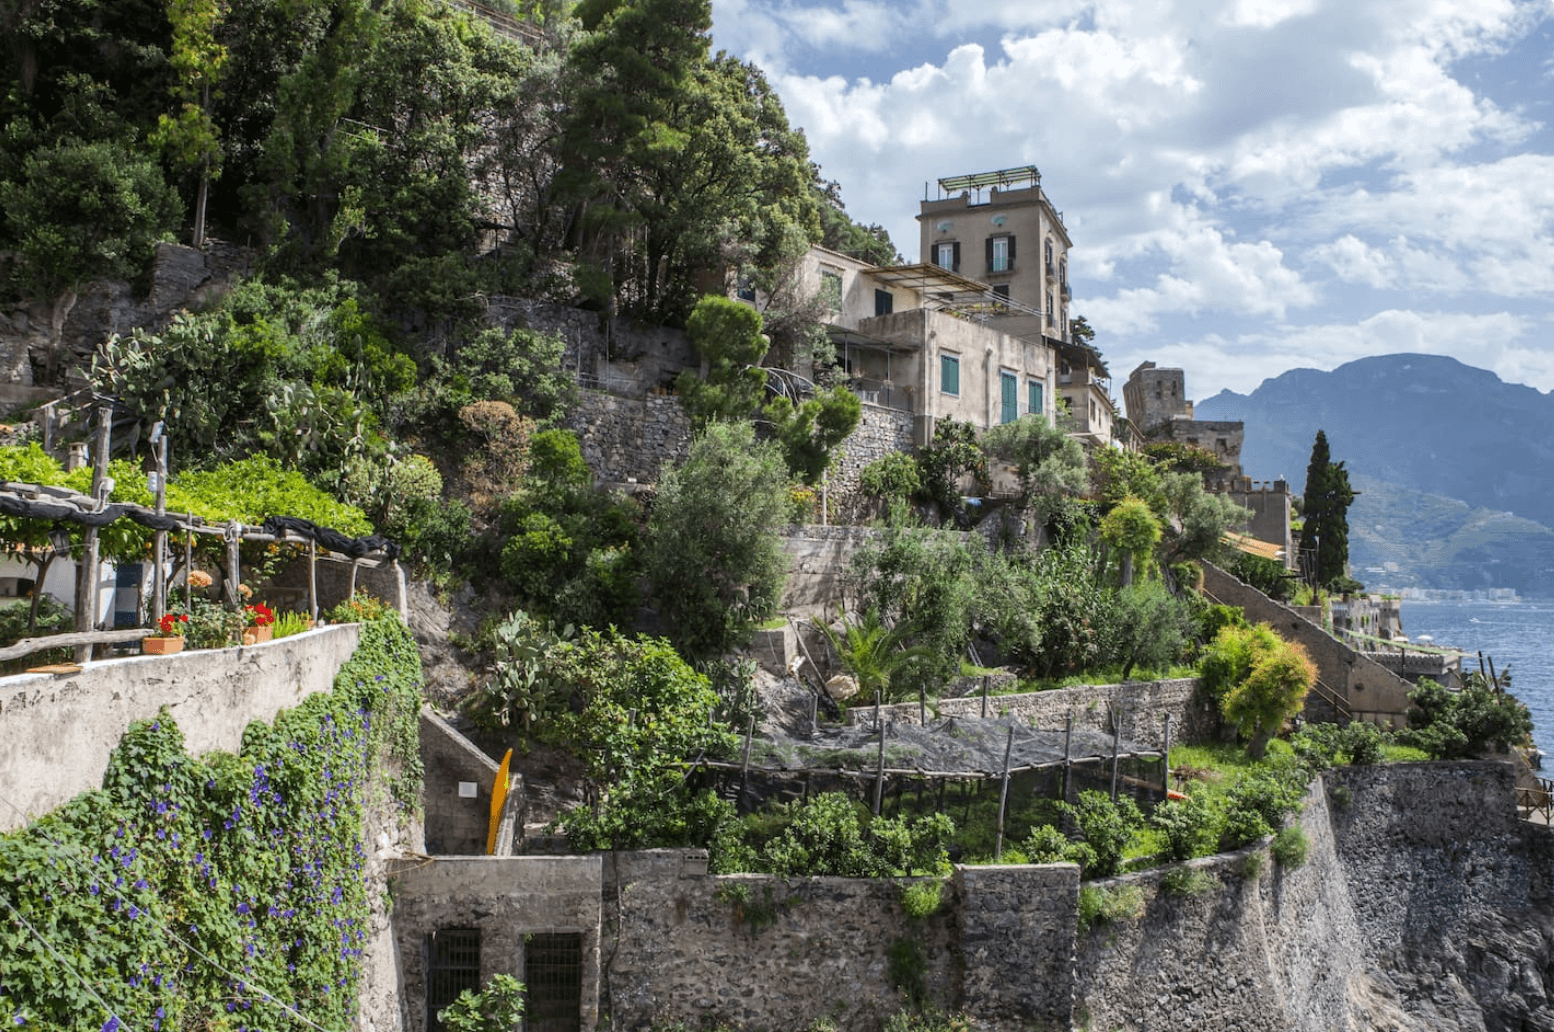 an image an airbnb view of the cliff side in Amalfi Coast, Italy